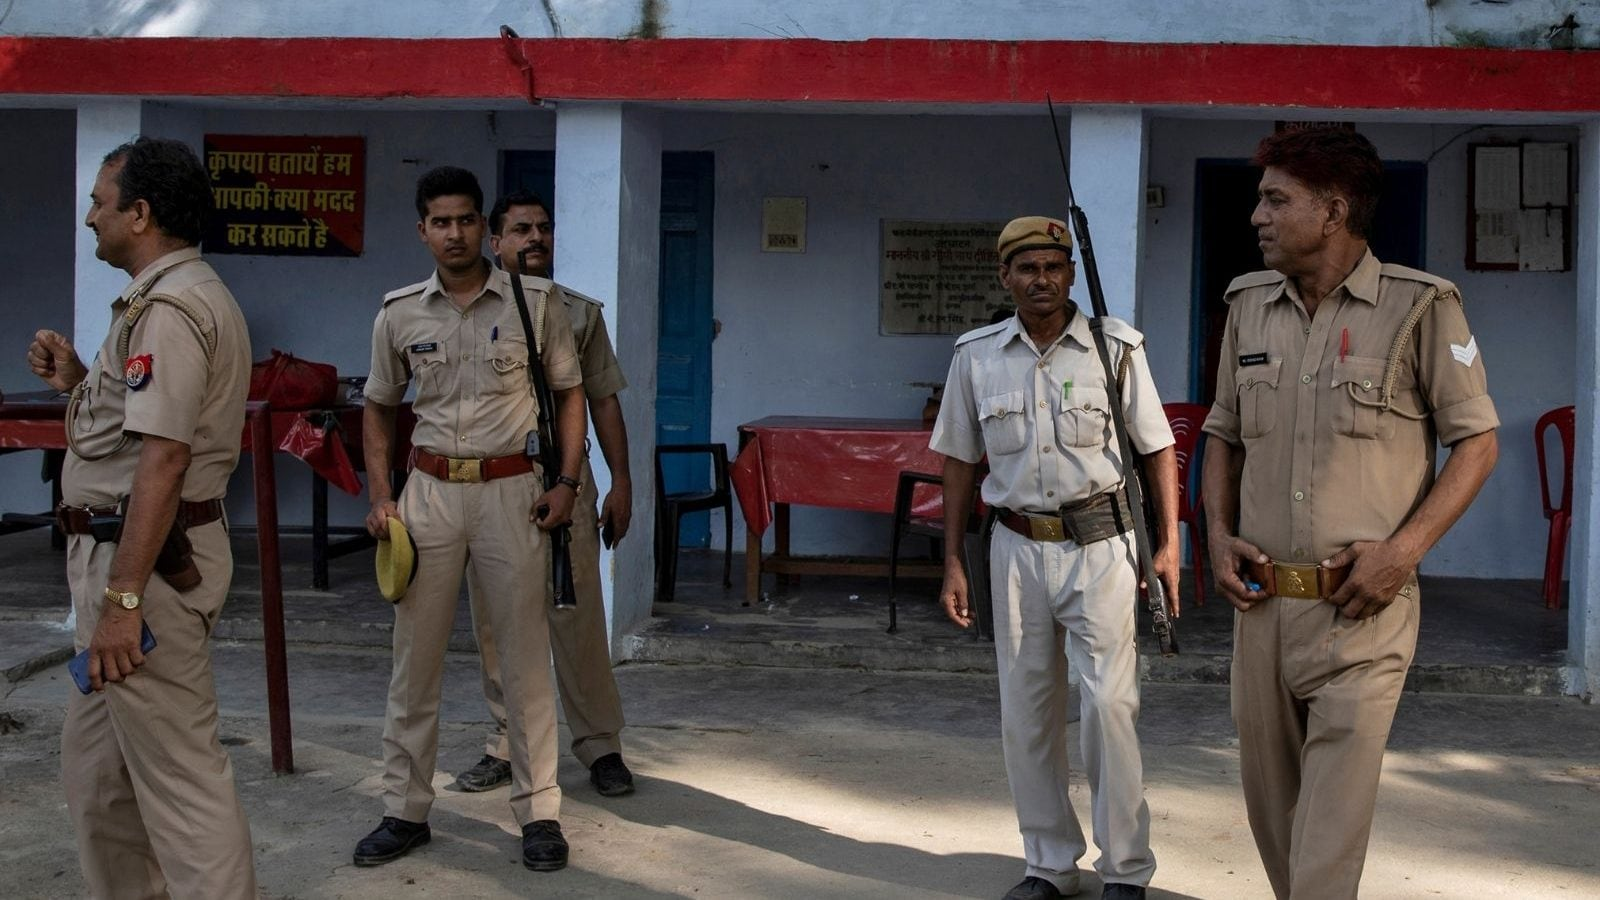 22-yr-old Man Killed in 'Accidental' Firing in UP's Bulandshahr, 2 Arrested